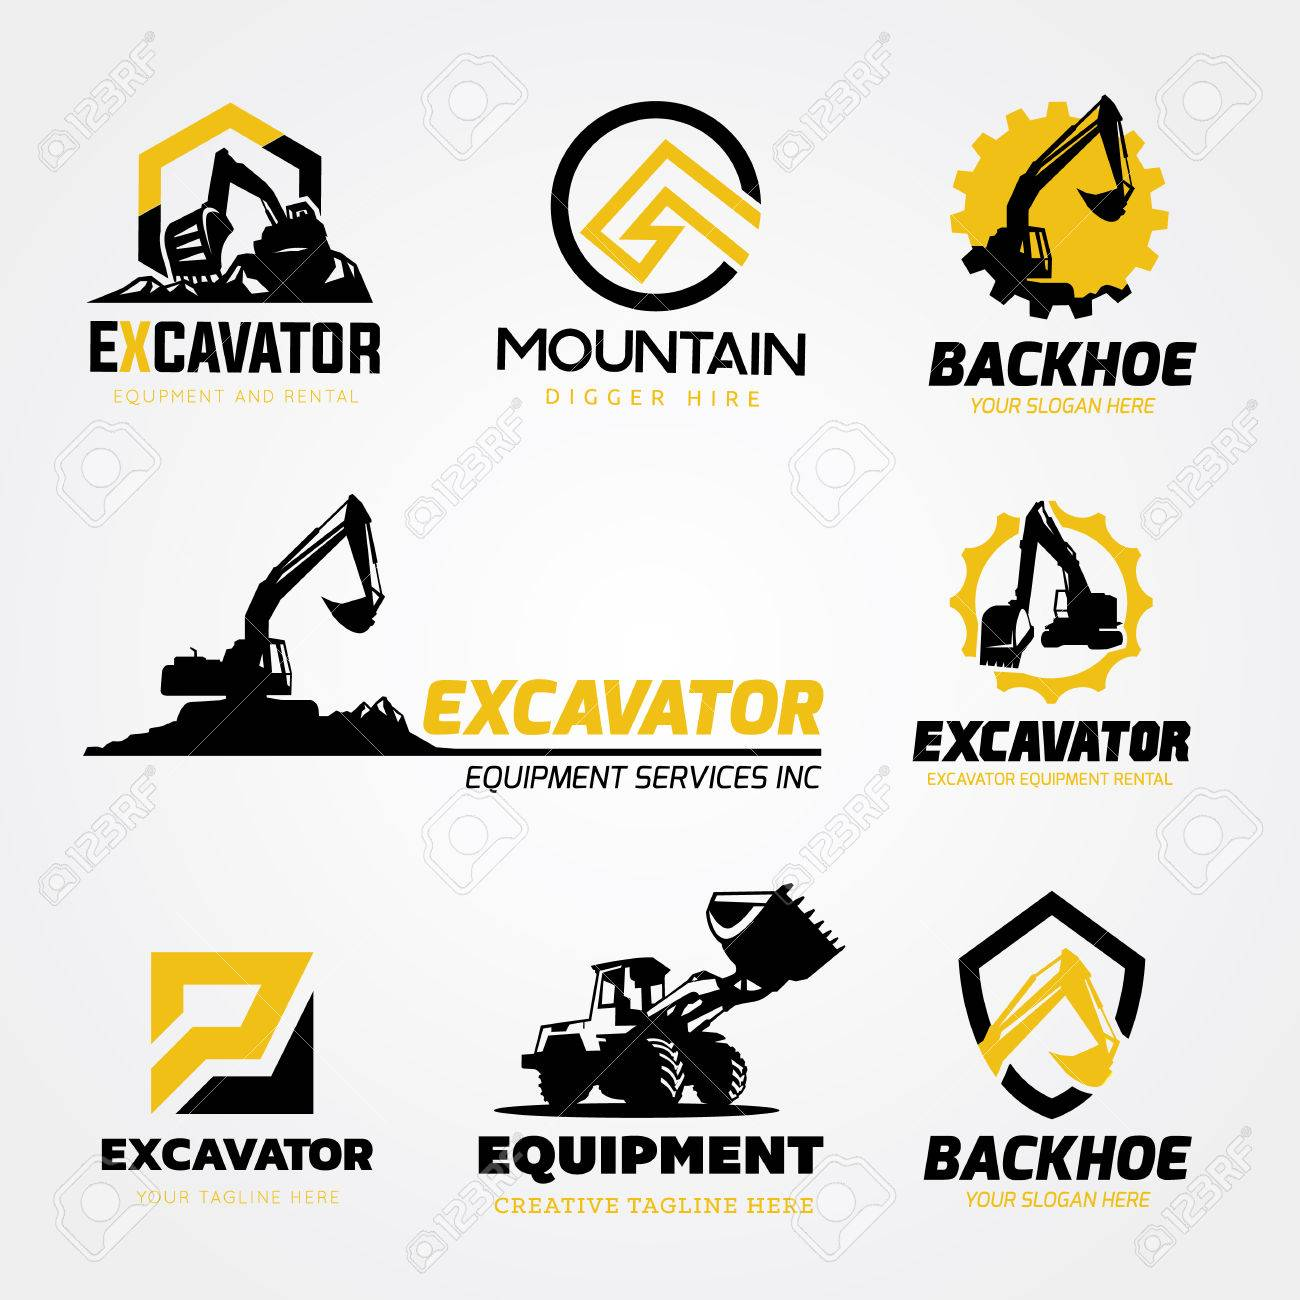 Excavator and backhoe logo collection - 81168598